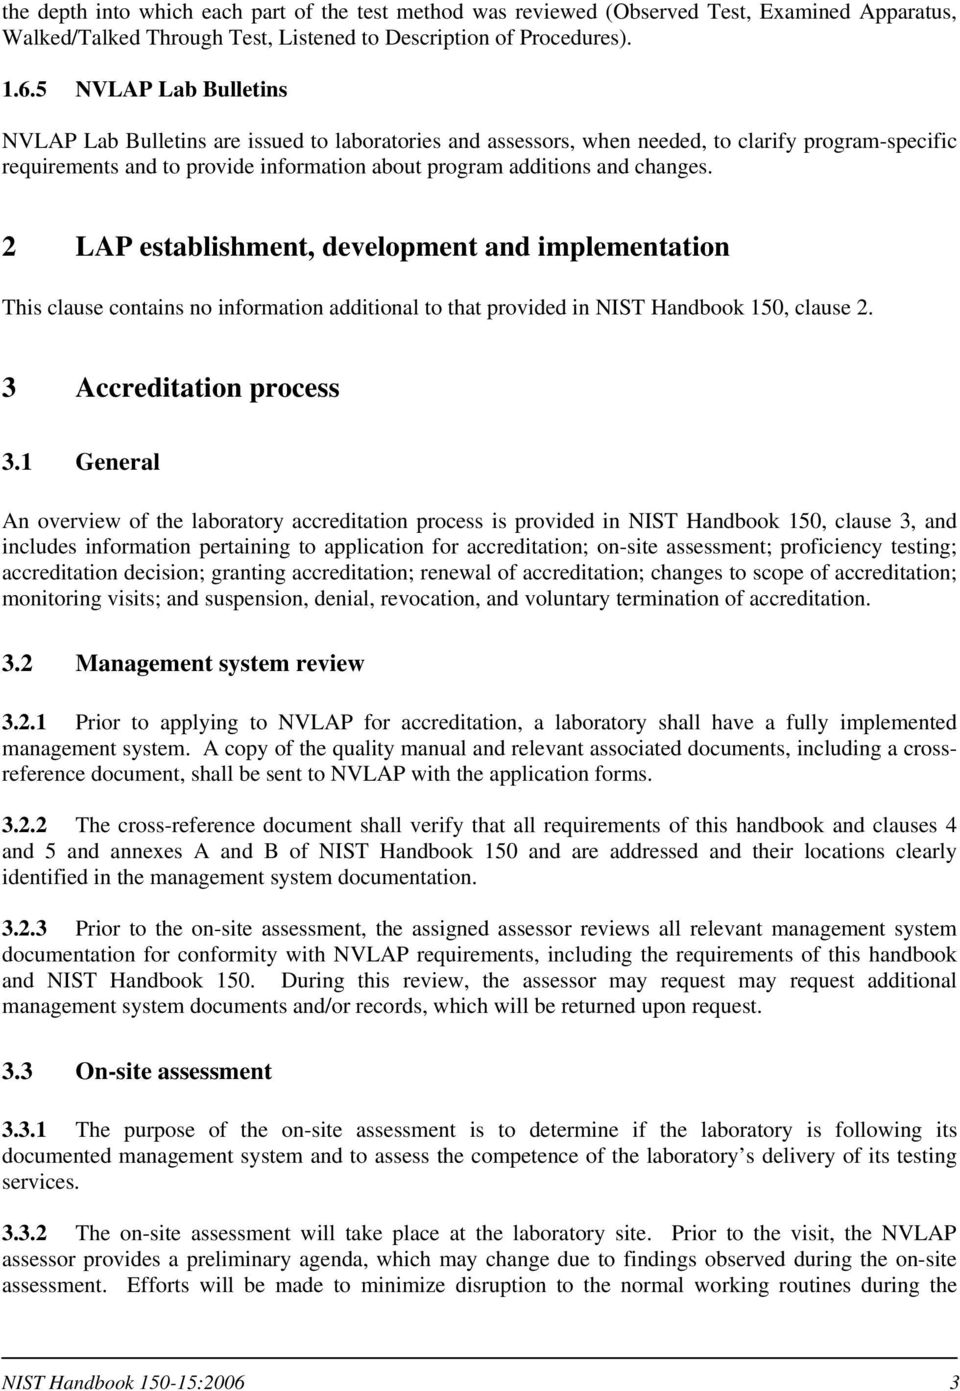 changes. 2 LAP establishment, development and implementation This clause contains no information additional to that provided in NIST Handbook 150, clause 2. 3 Accreditation process 3.